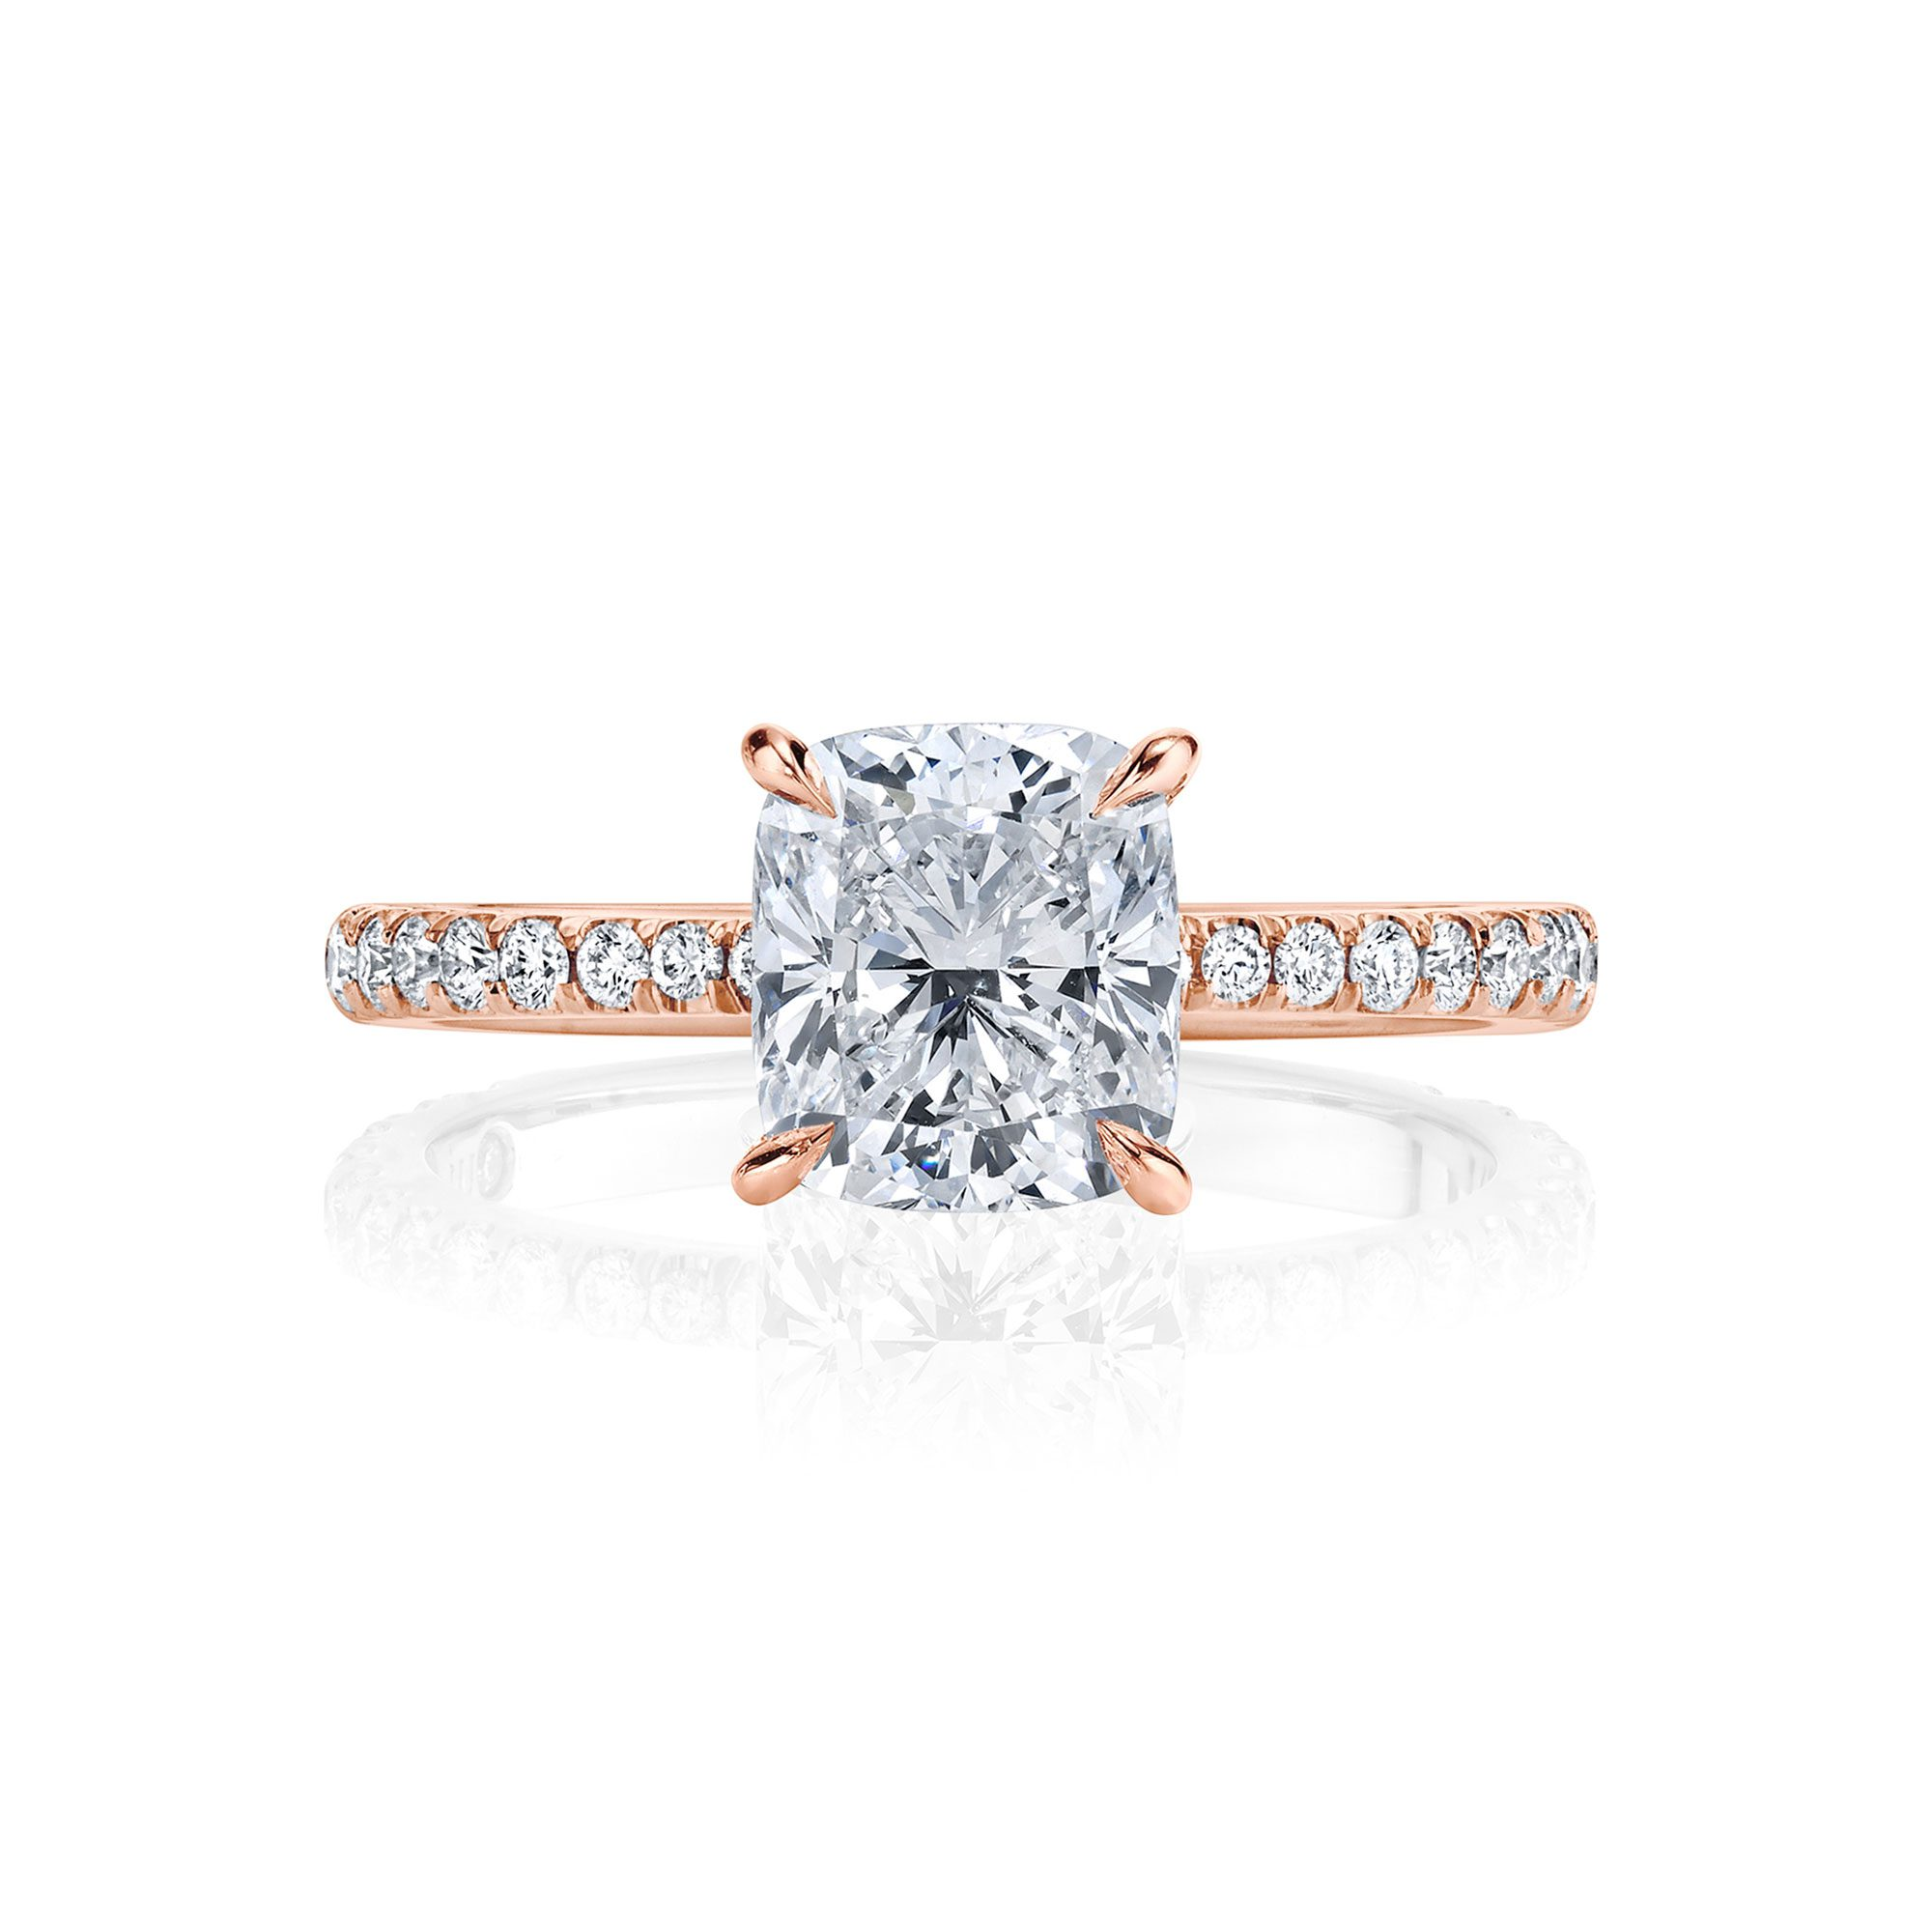 Eloise Cushion Solitaire Engagement Ring with a diamond pavé band in 18k Rose Gold Front View by Oui by Jean Dousset